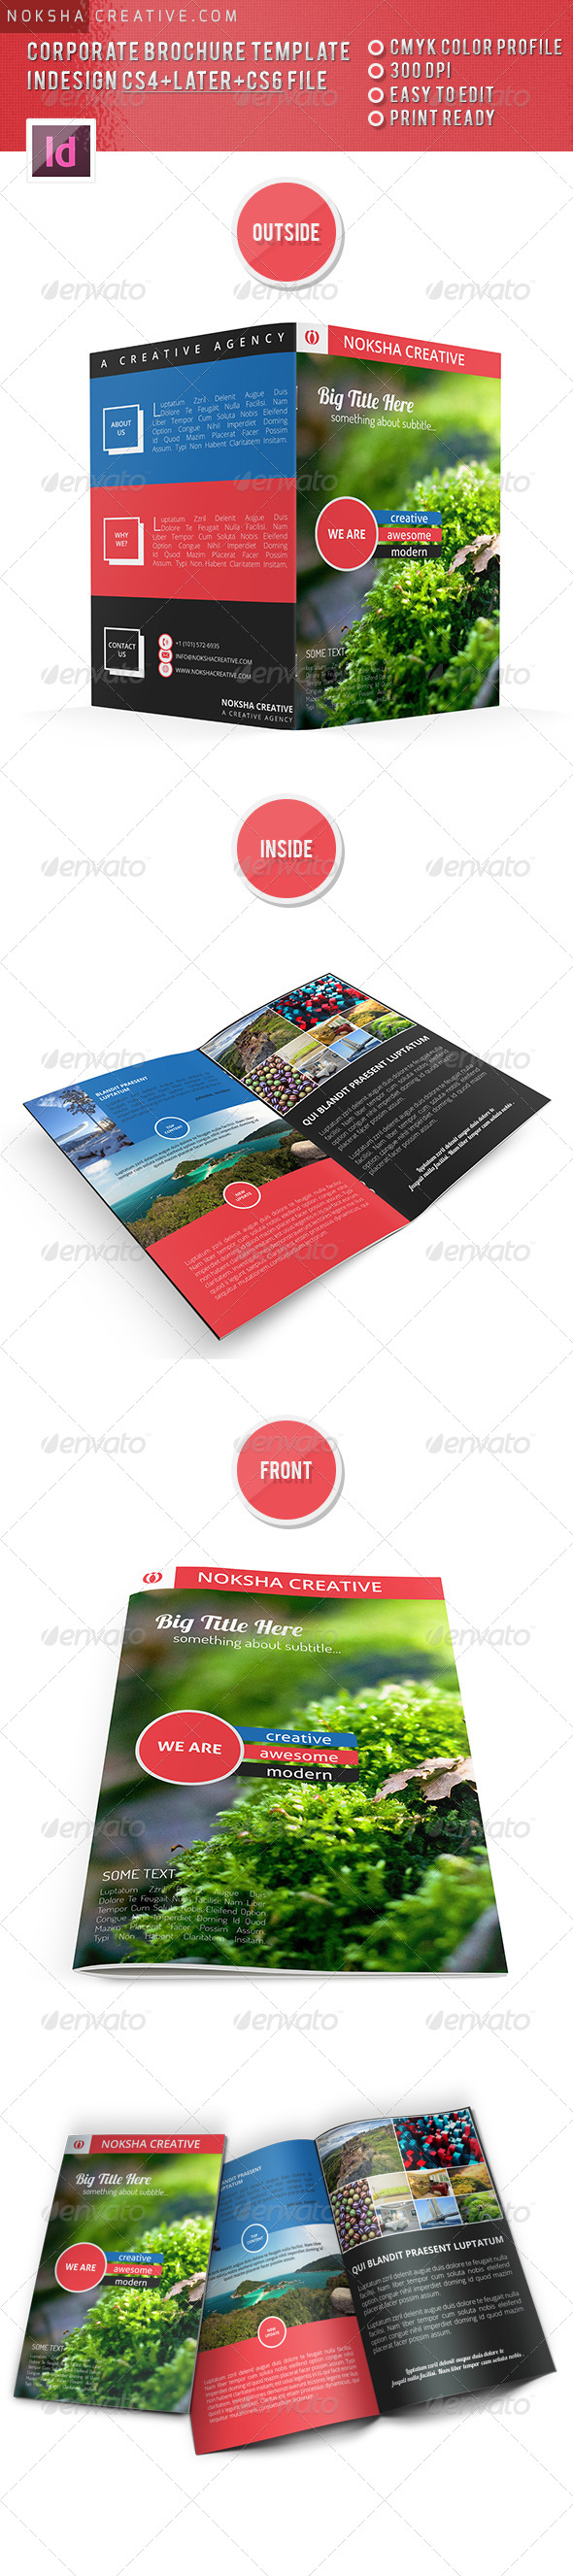 GraphicRiver Corporate Bi-fold Brochure 5311690